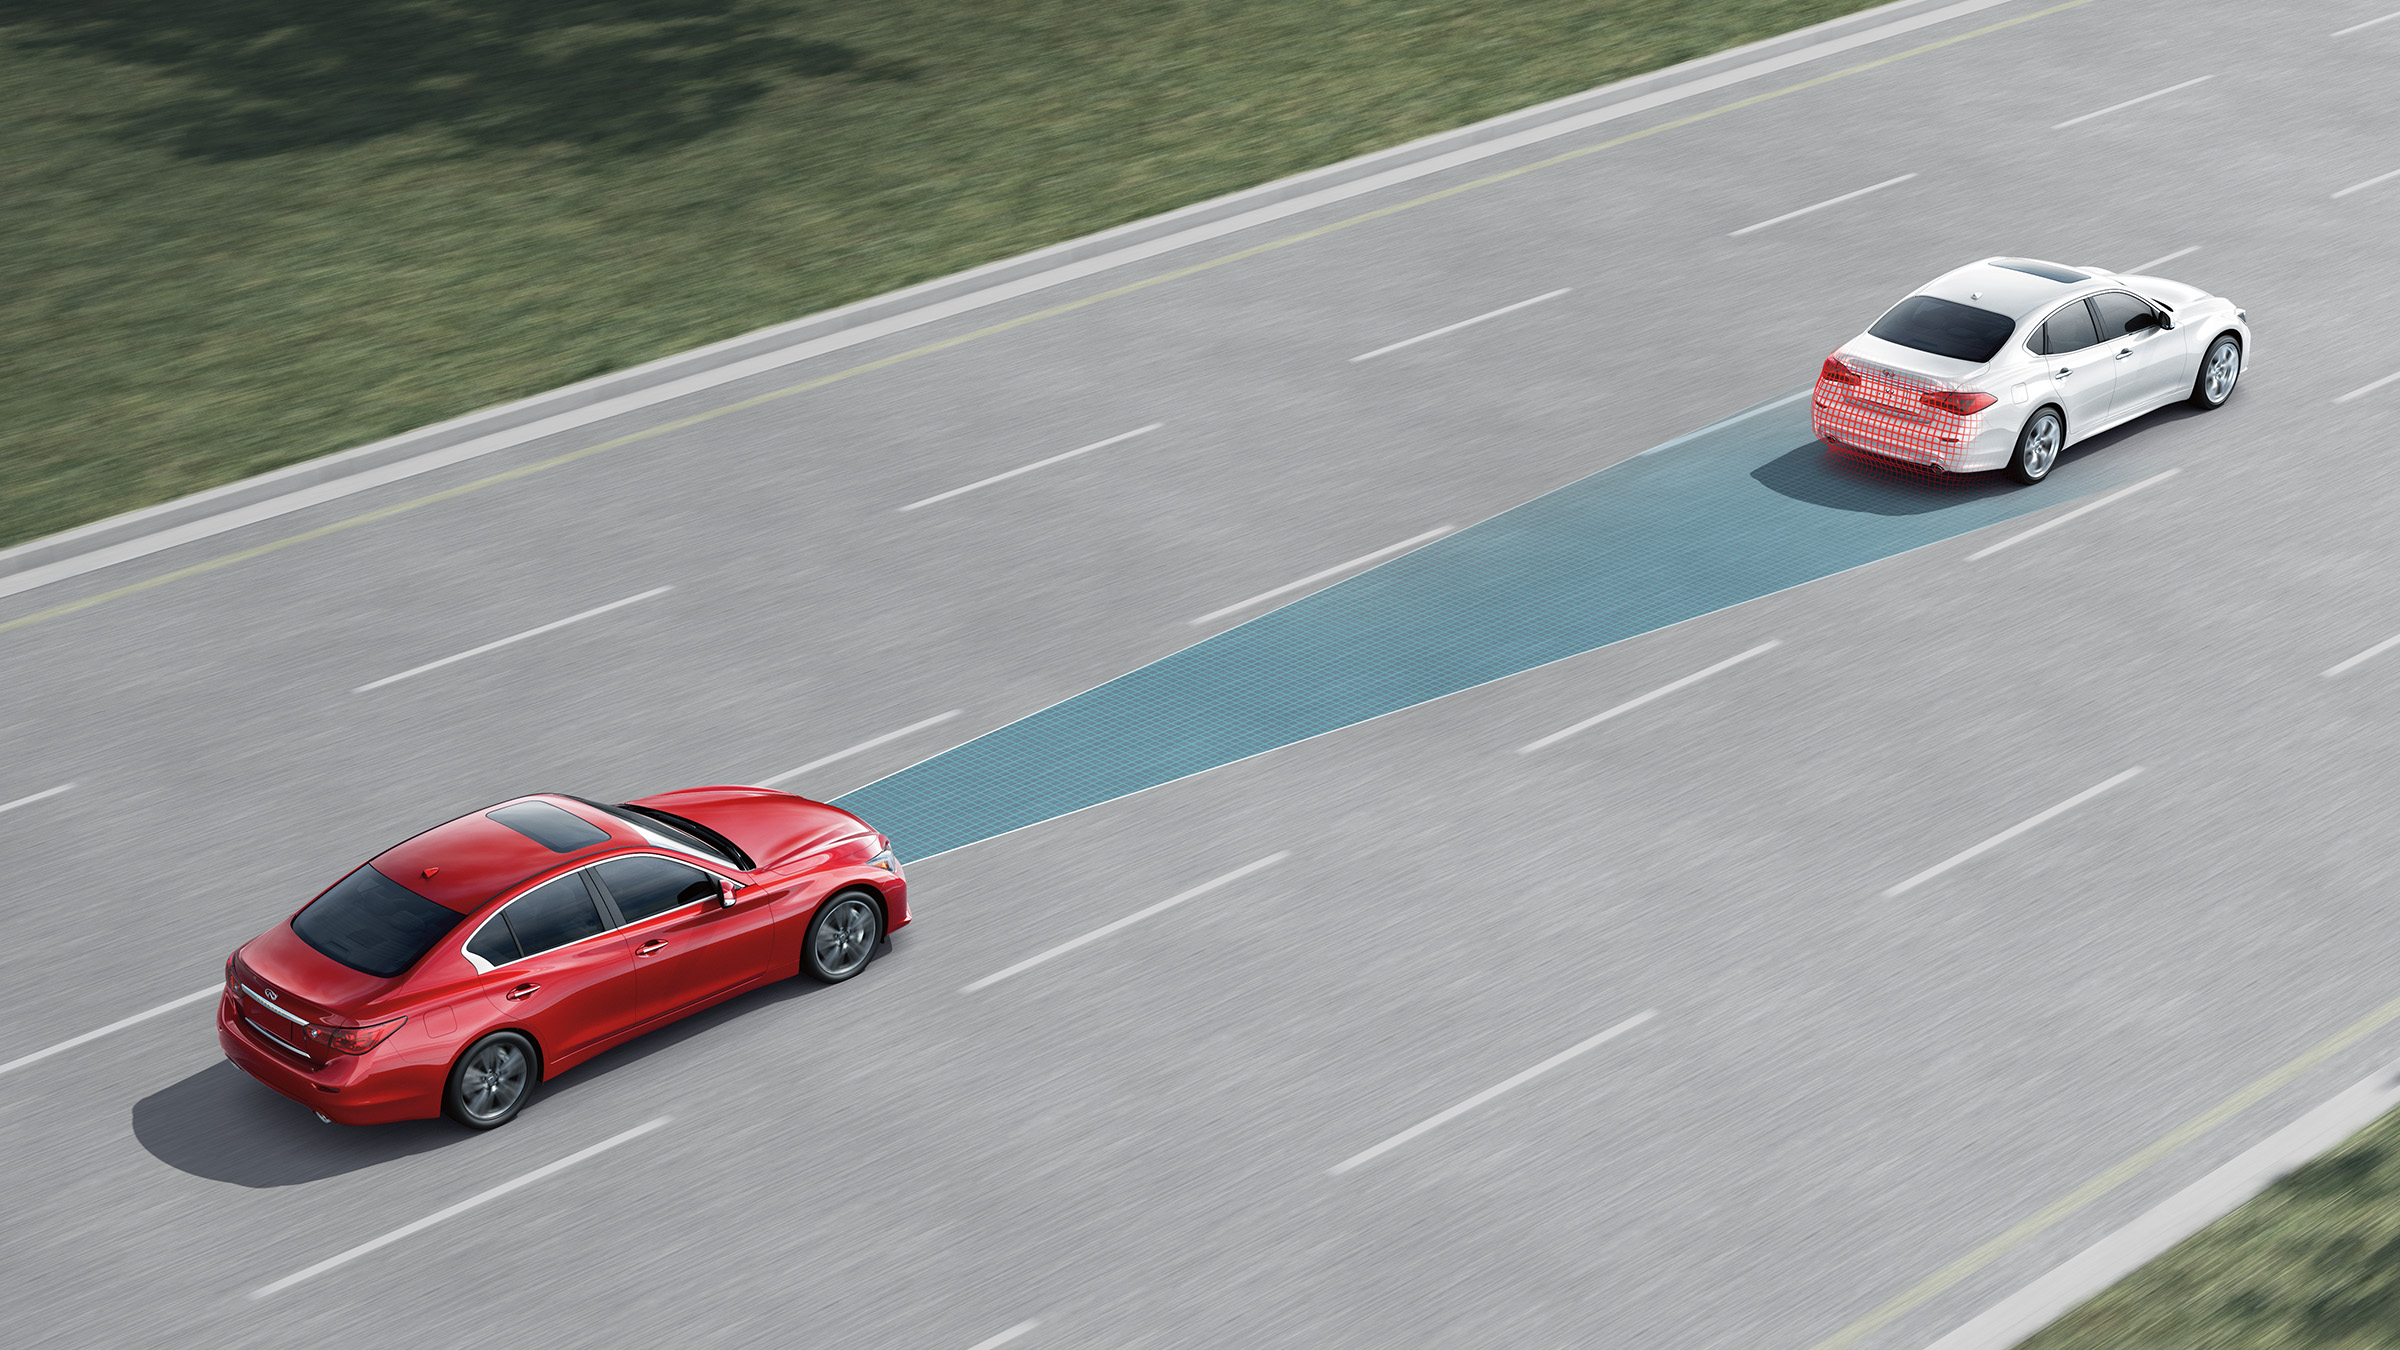 Forward Emergency Braking with pedestrian detection